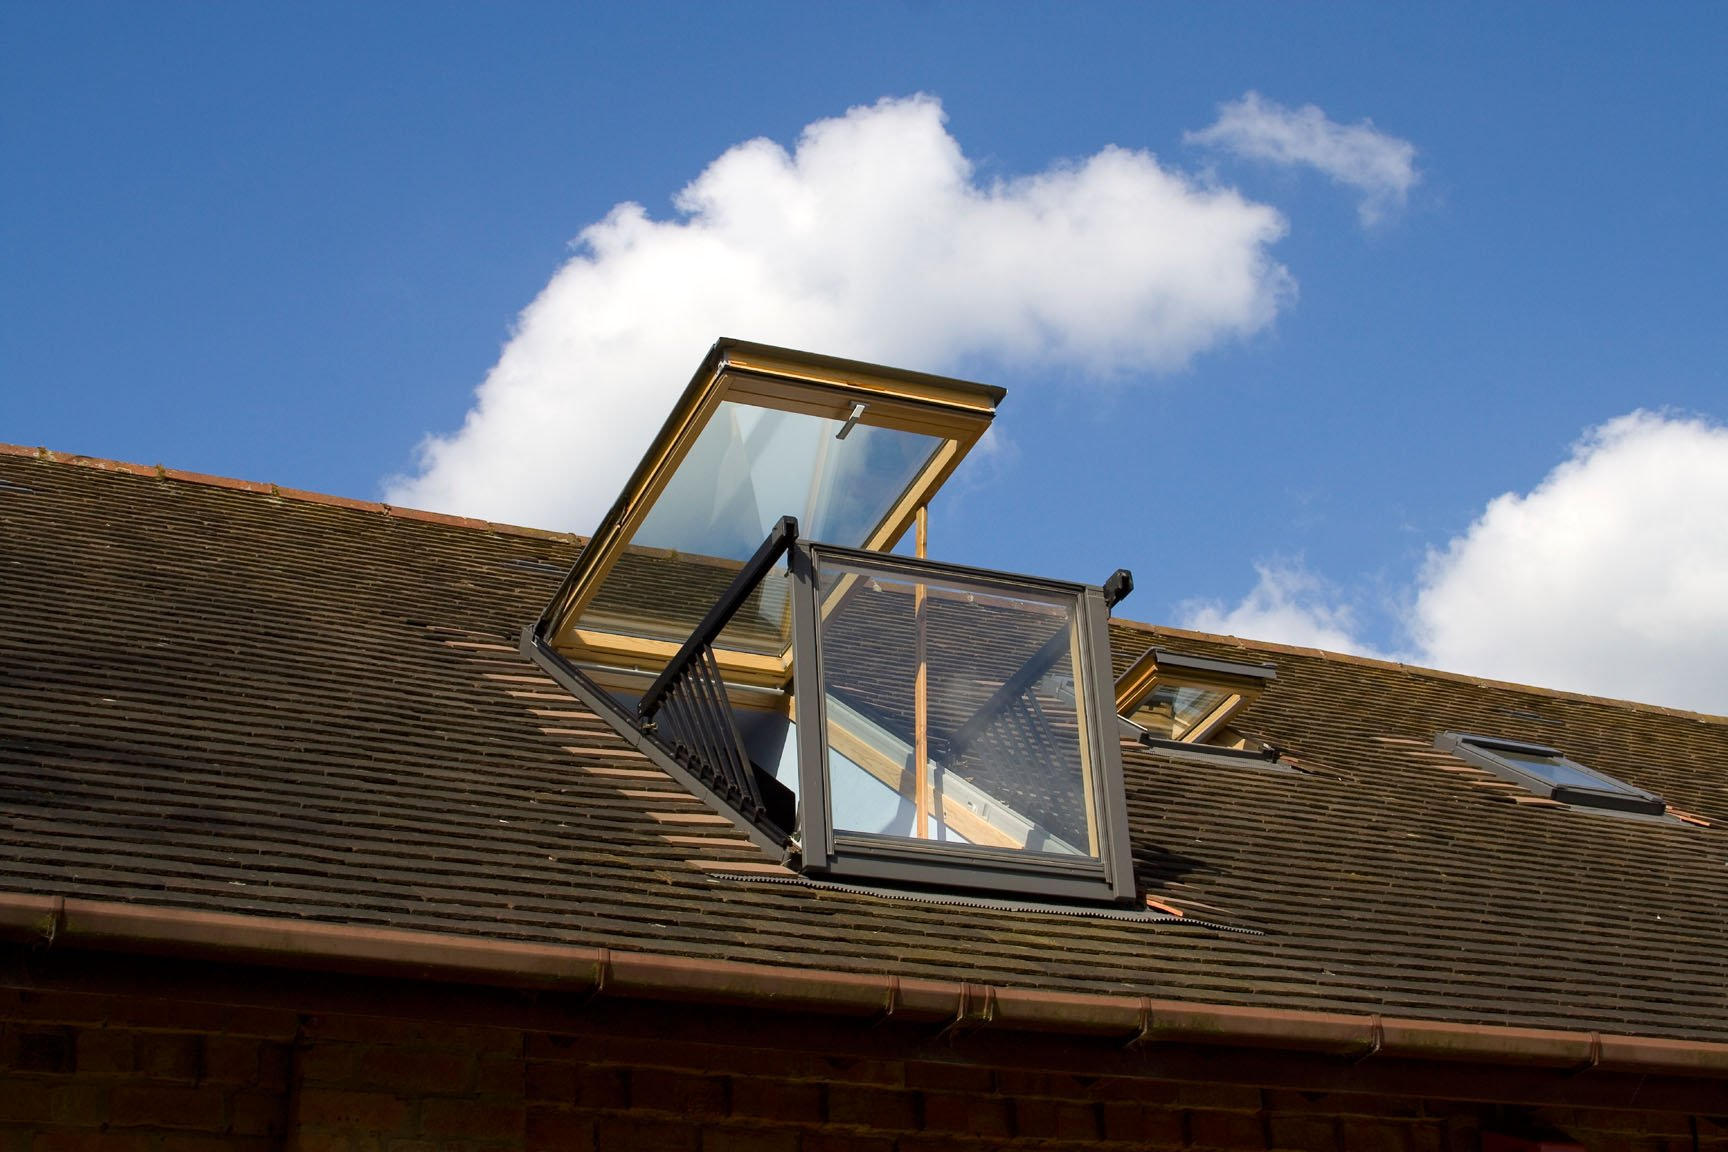 Velux window fittings